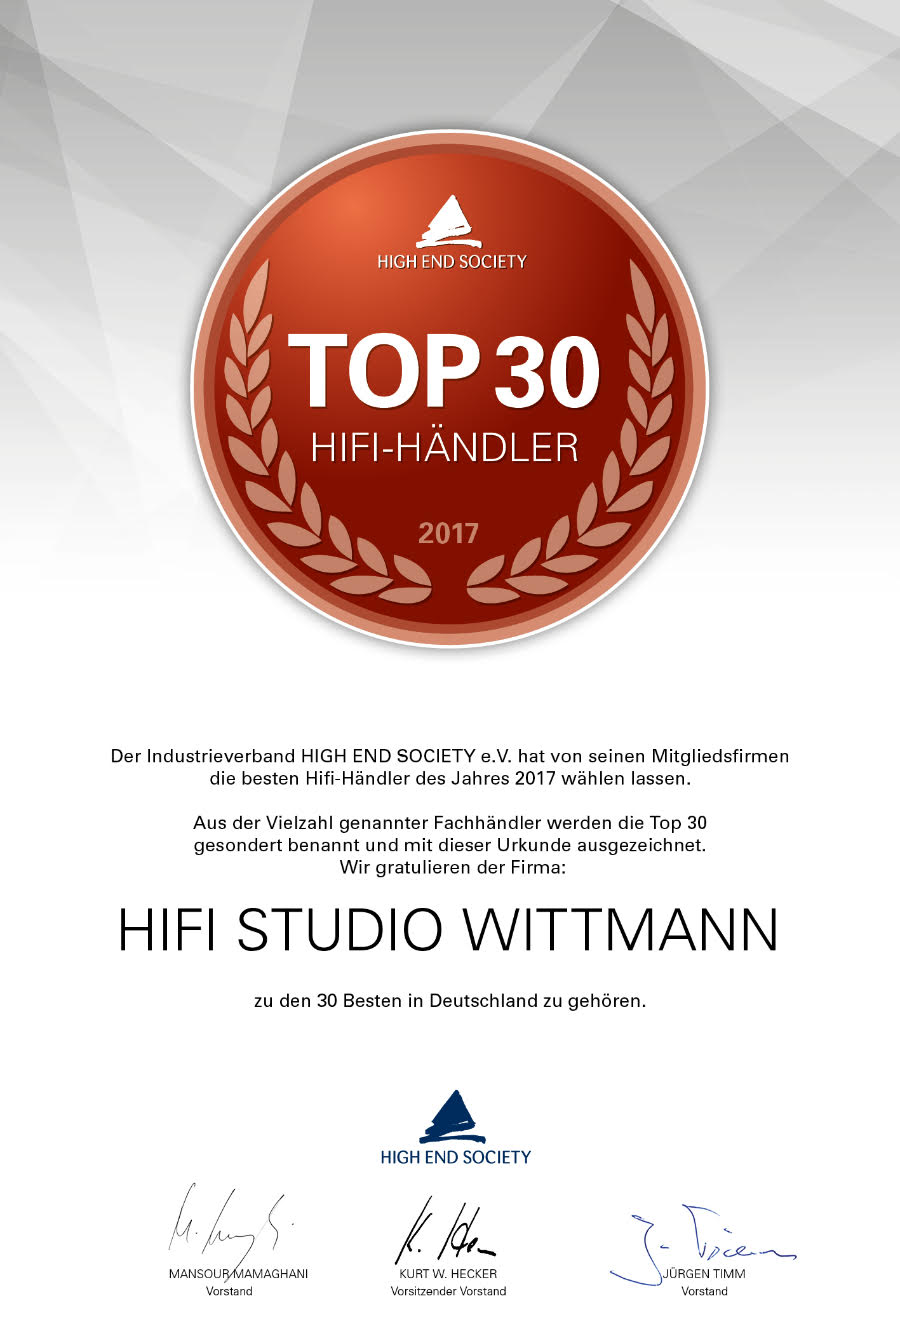 hifi studio wittmann in stuttgart high end society top 30. Black Bedroom Furniture Sets. Home Design Ideas